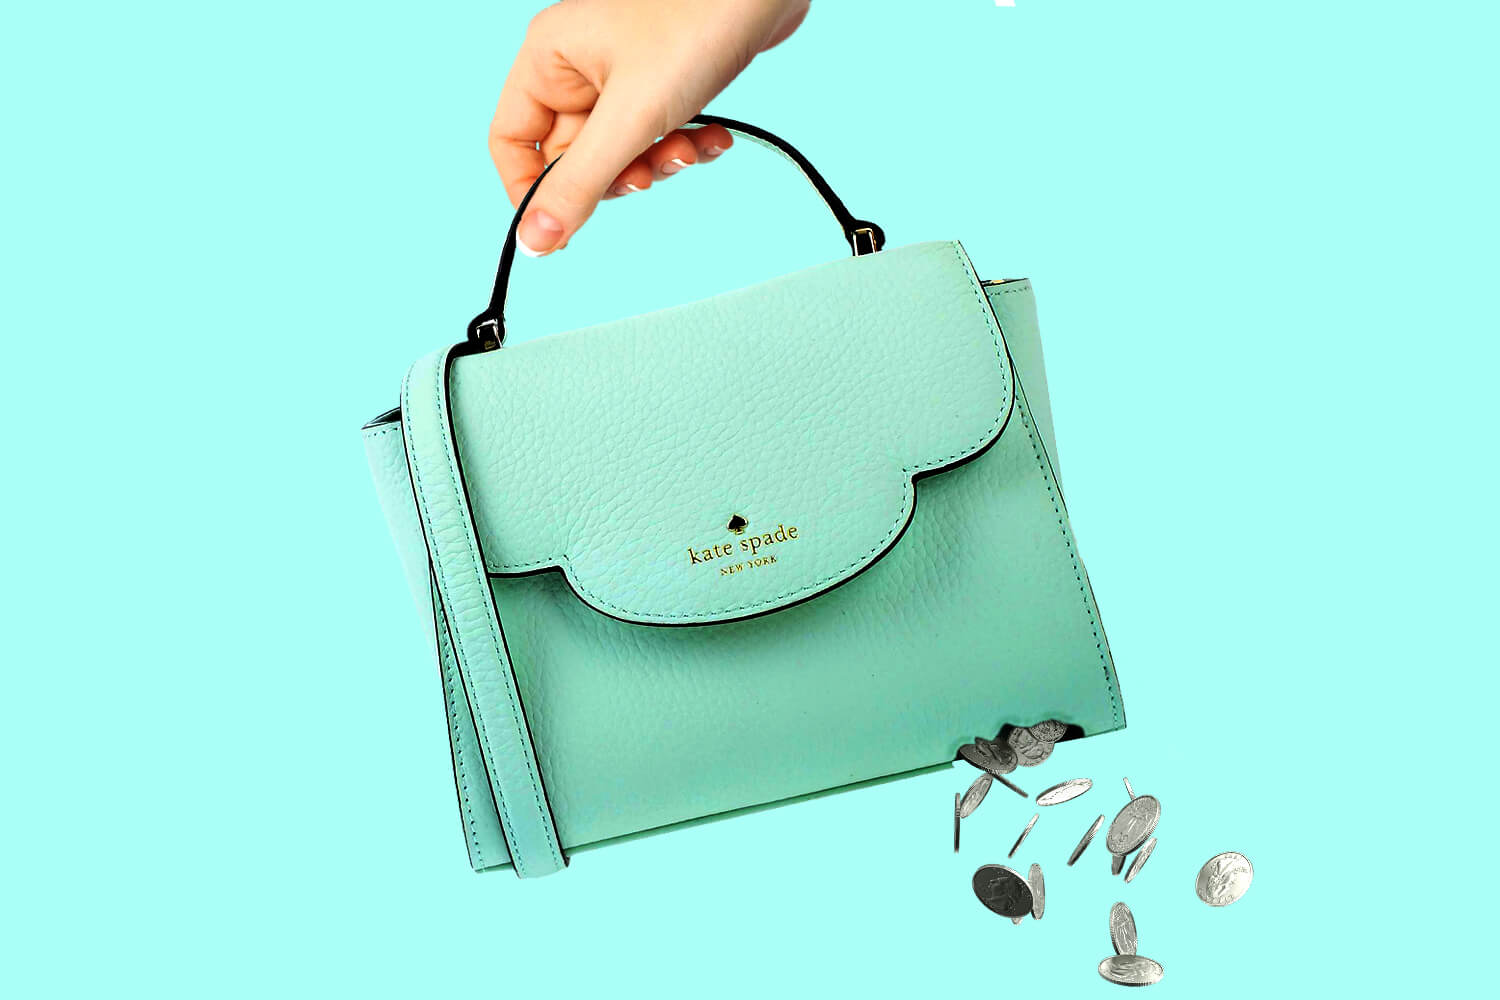 Kate Spade's in need of image rehab.  Francis Scialabba